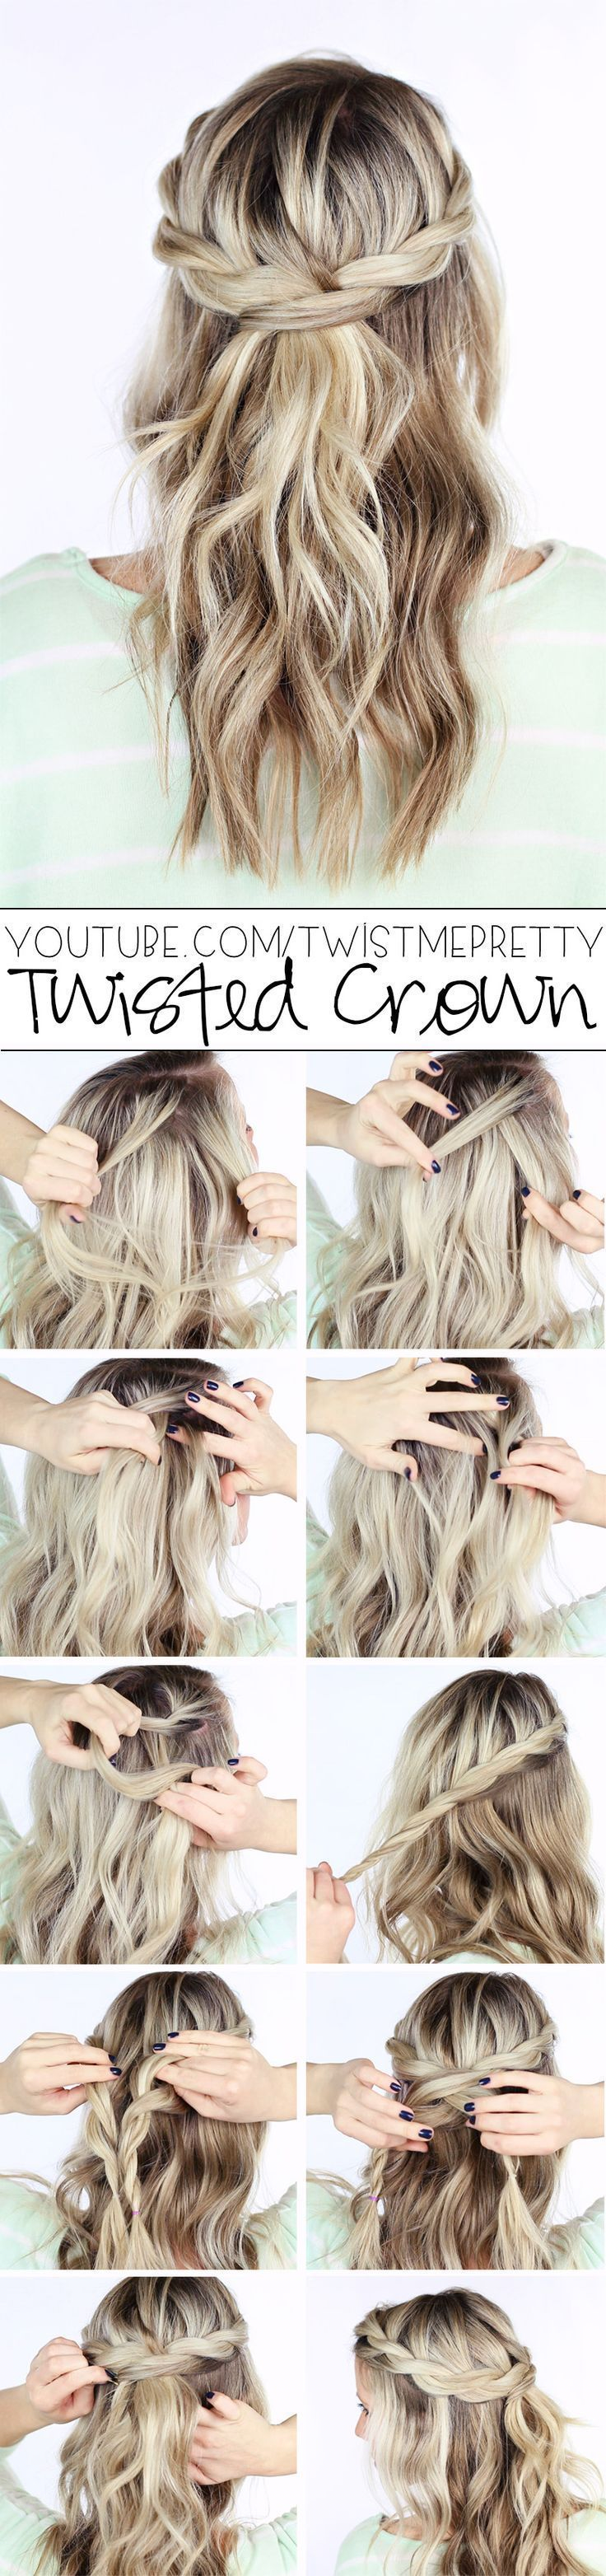 best 25+ down hairstyles ideas on pinterest | half up hairstyles